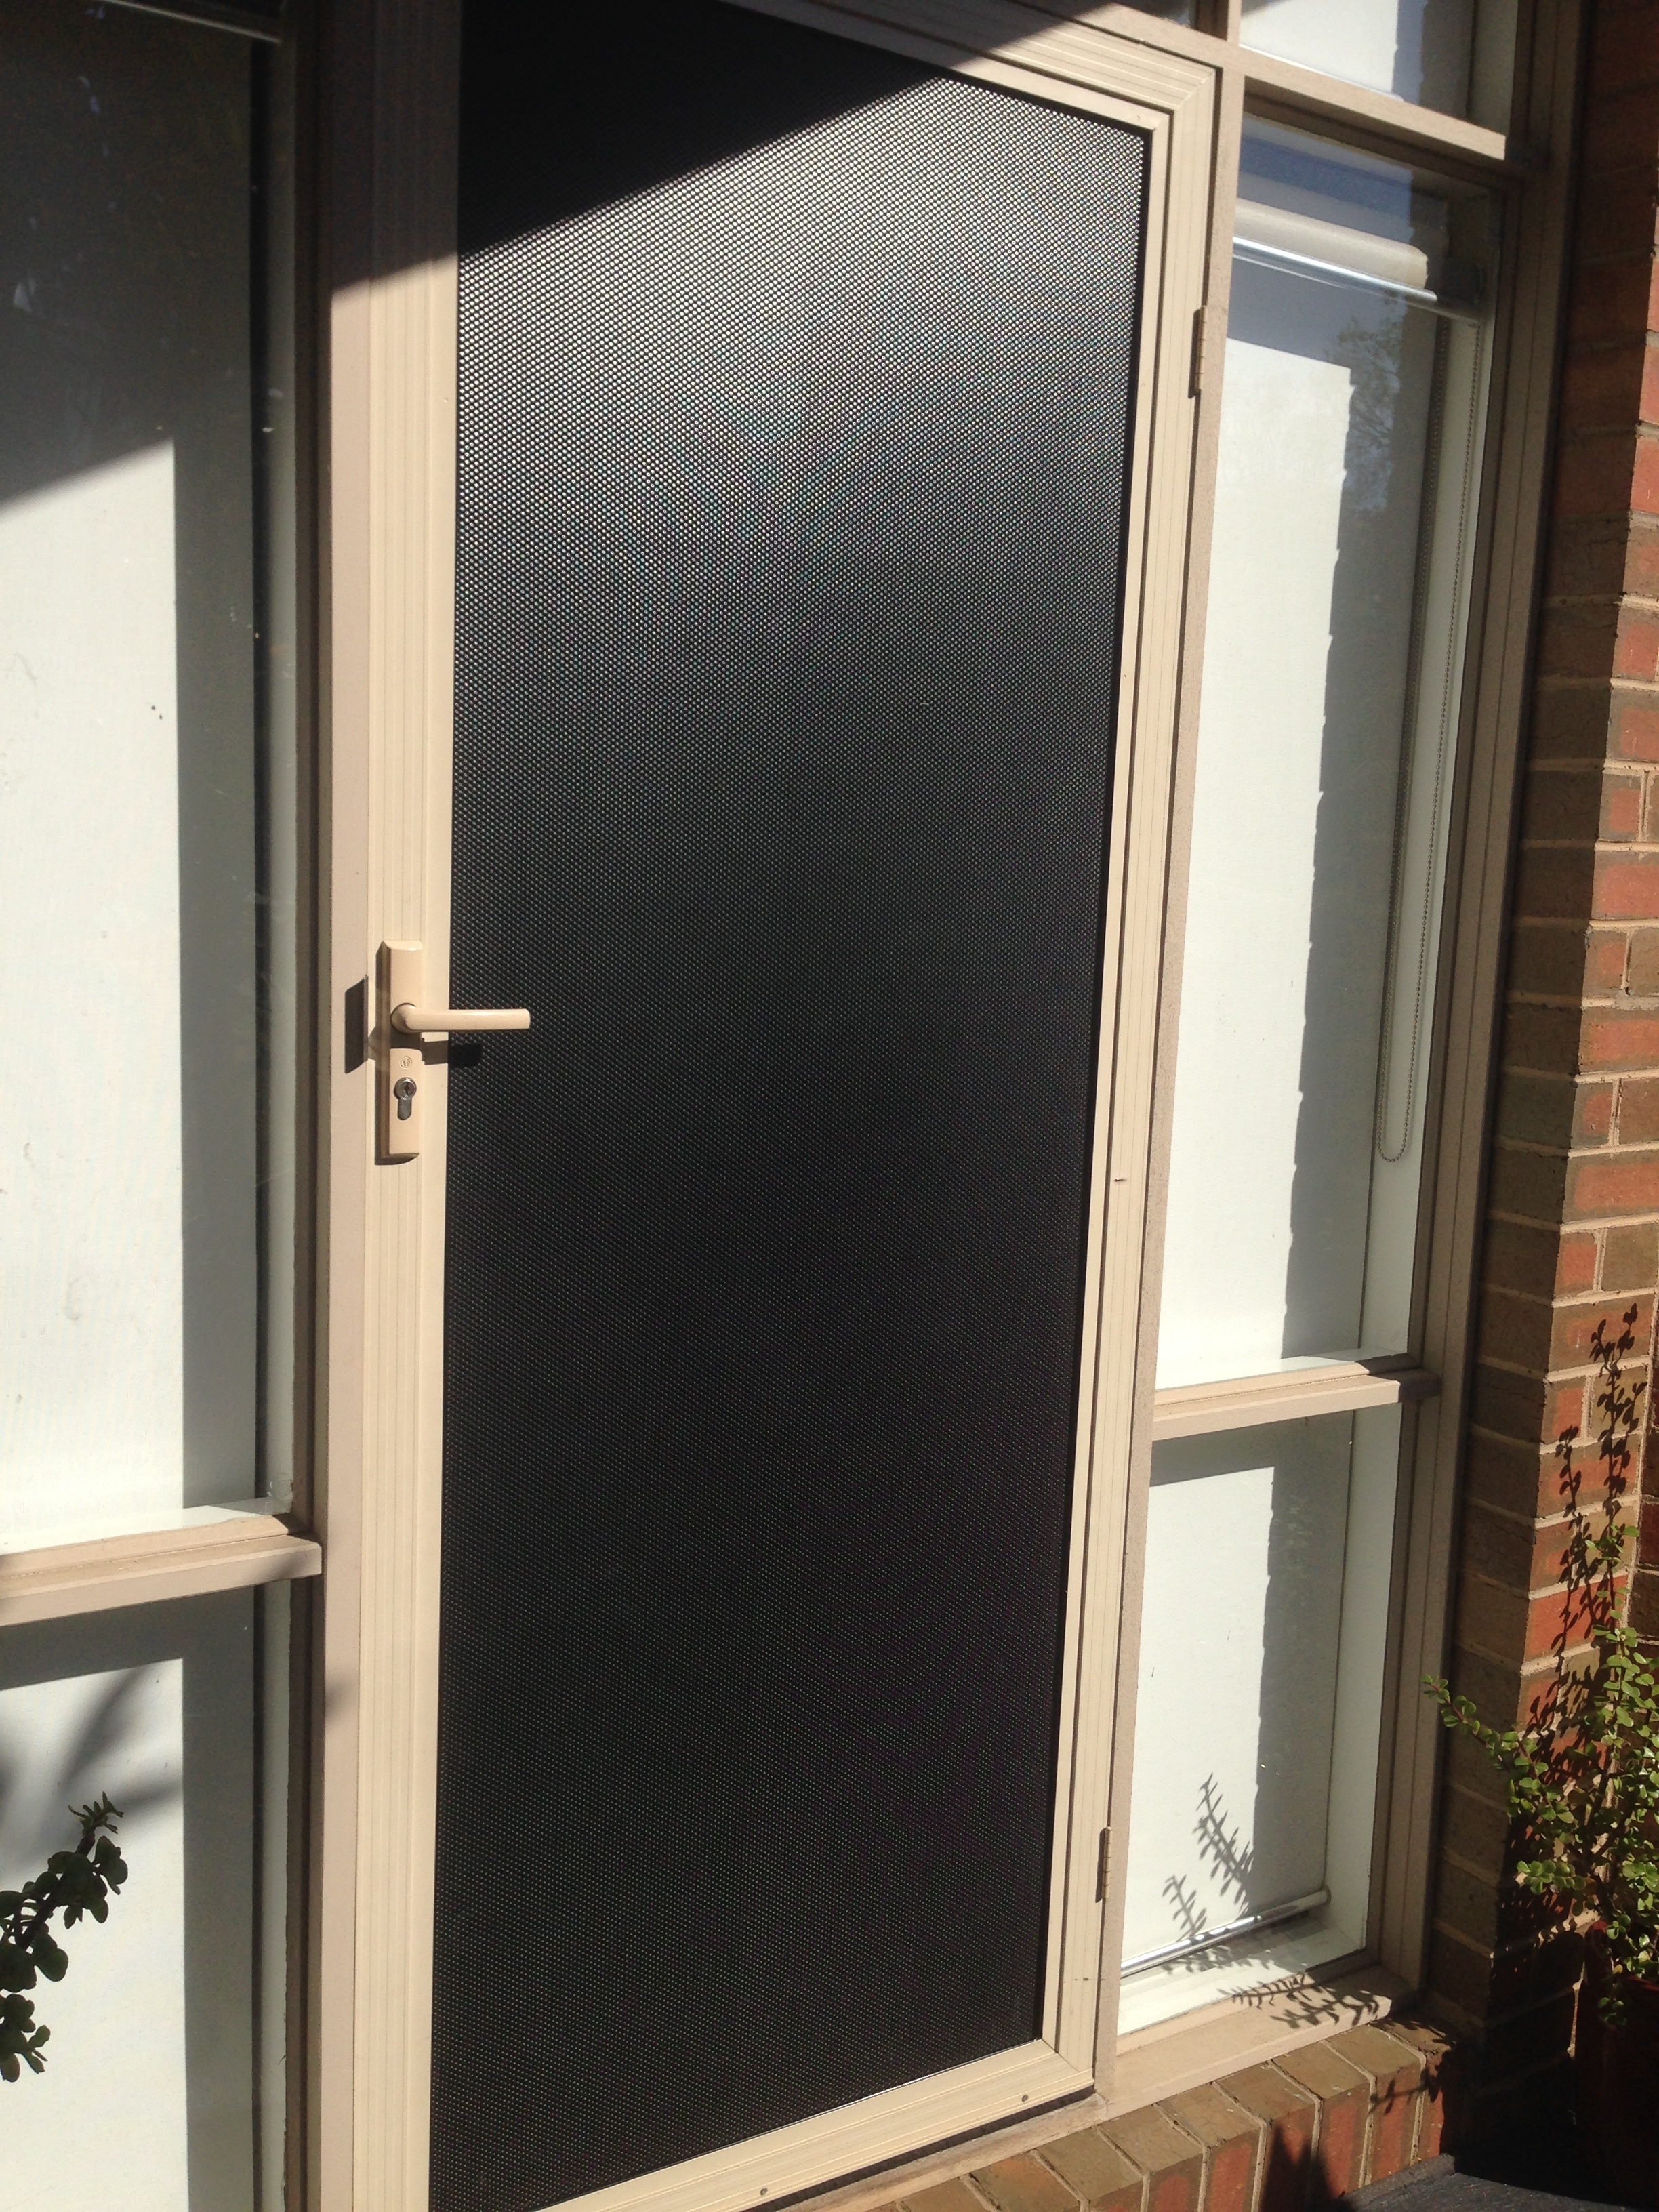 Eco Roller Shutters - tough mesh security screen ... : screan doors - pezcame.com